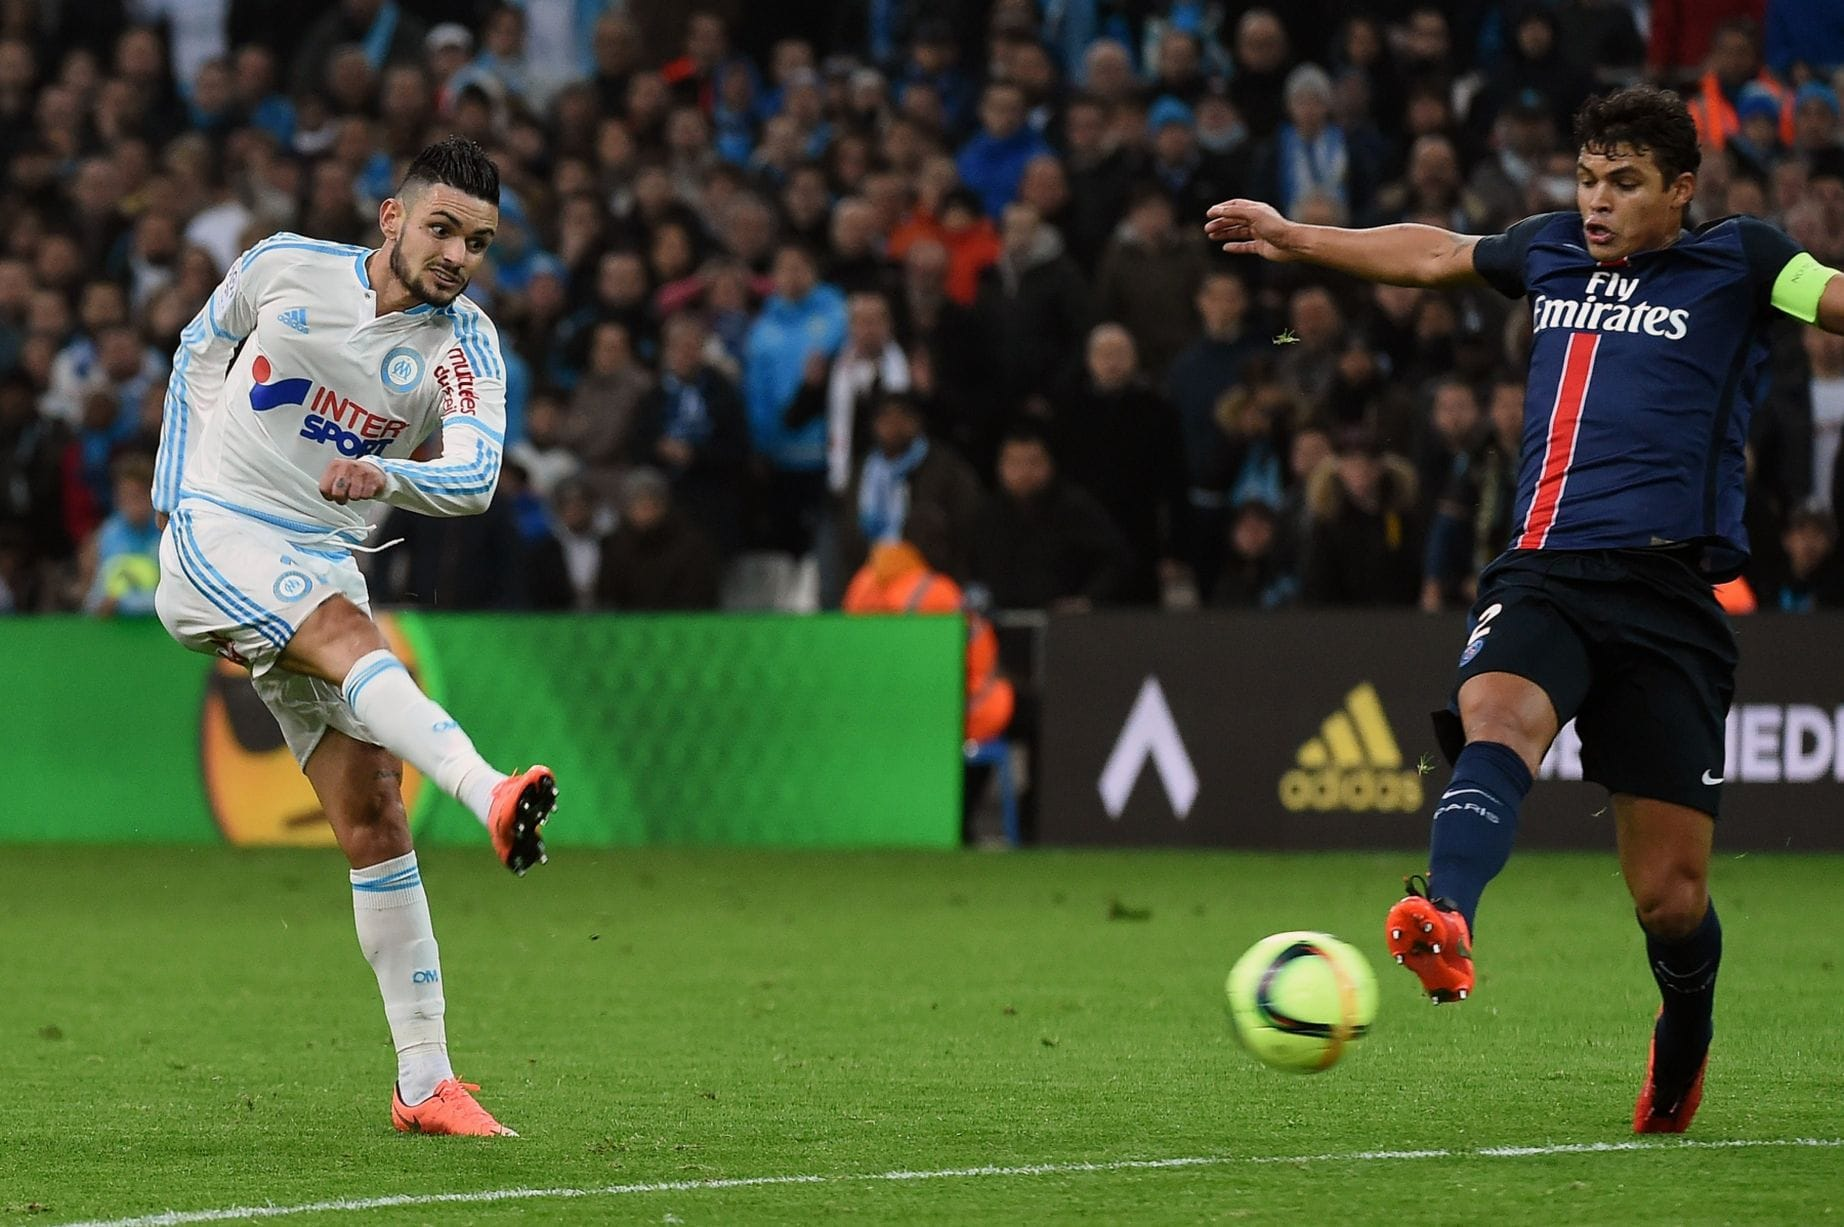 PSG - Marseille Soccer Prediction